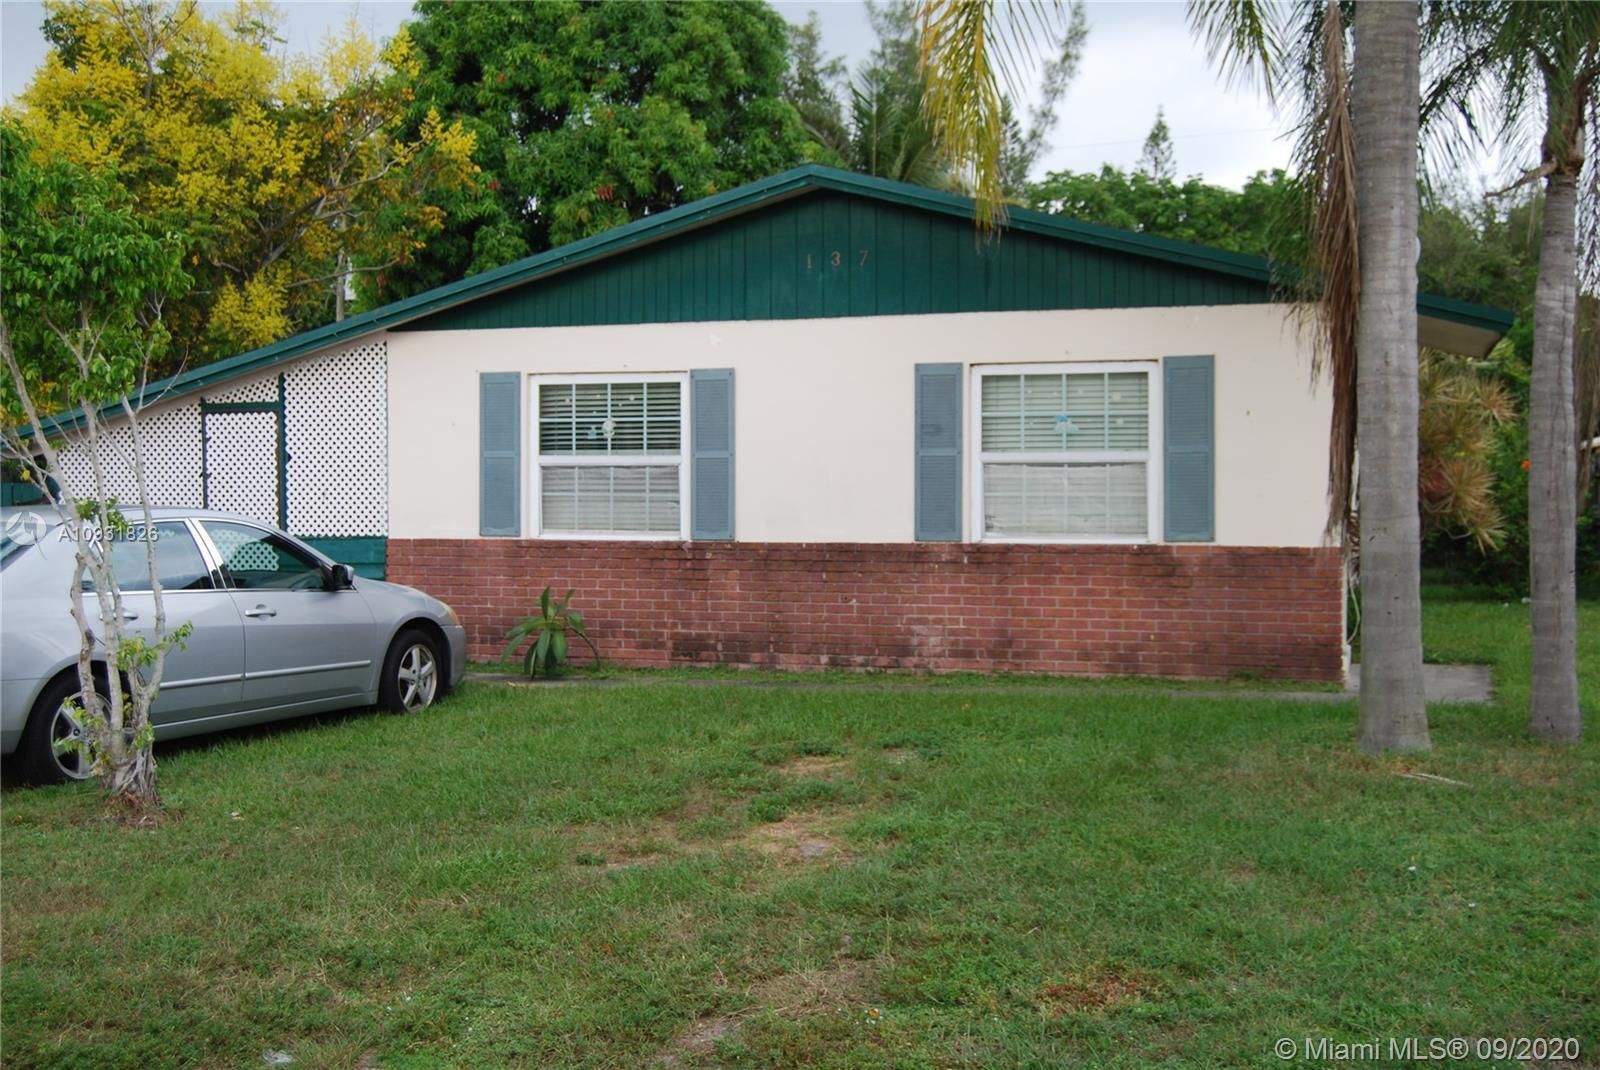 Tremendous Investment Opportunity!! 3 Bedroom 1 Bath House in the Heart of Jupiter. Currently Rented